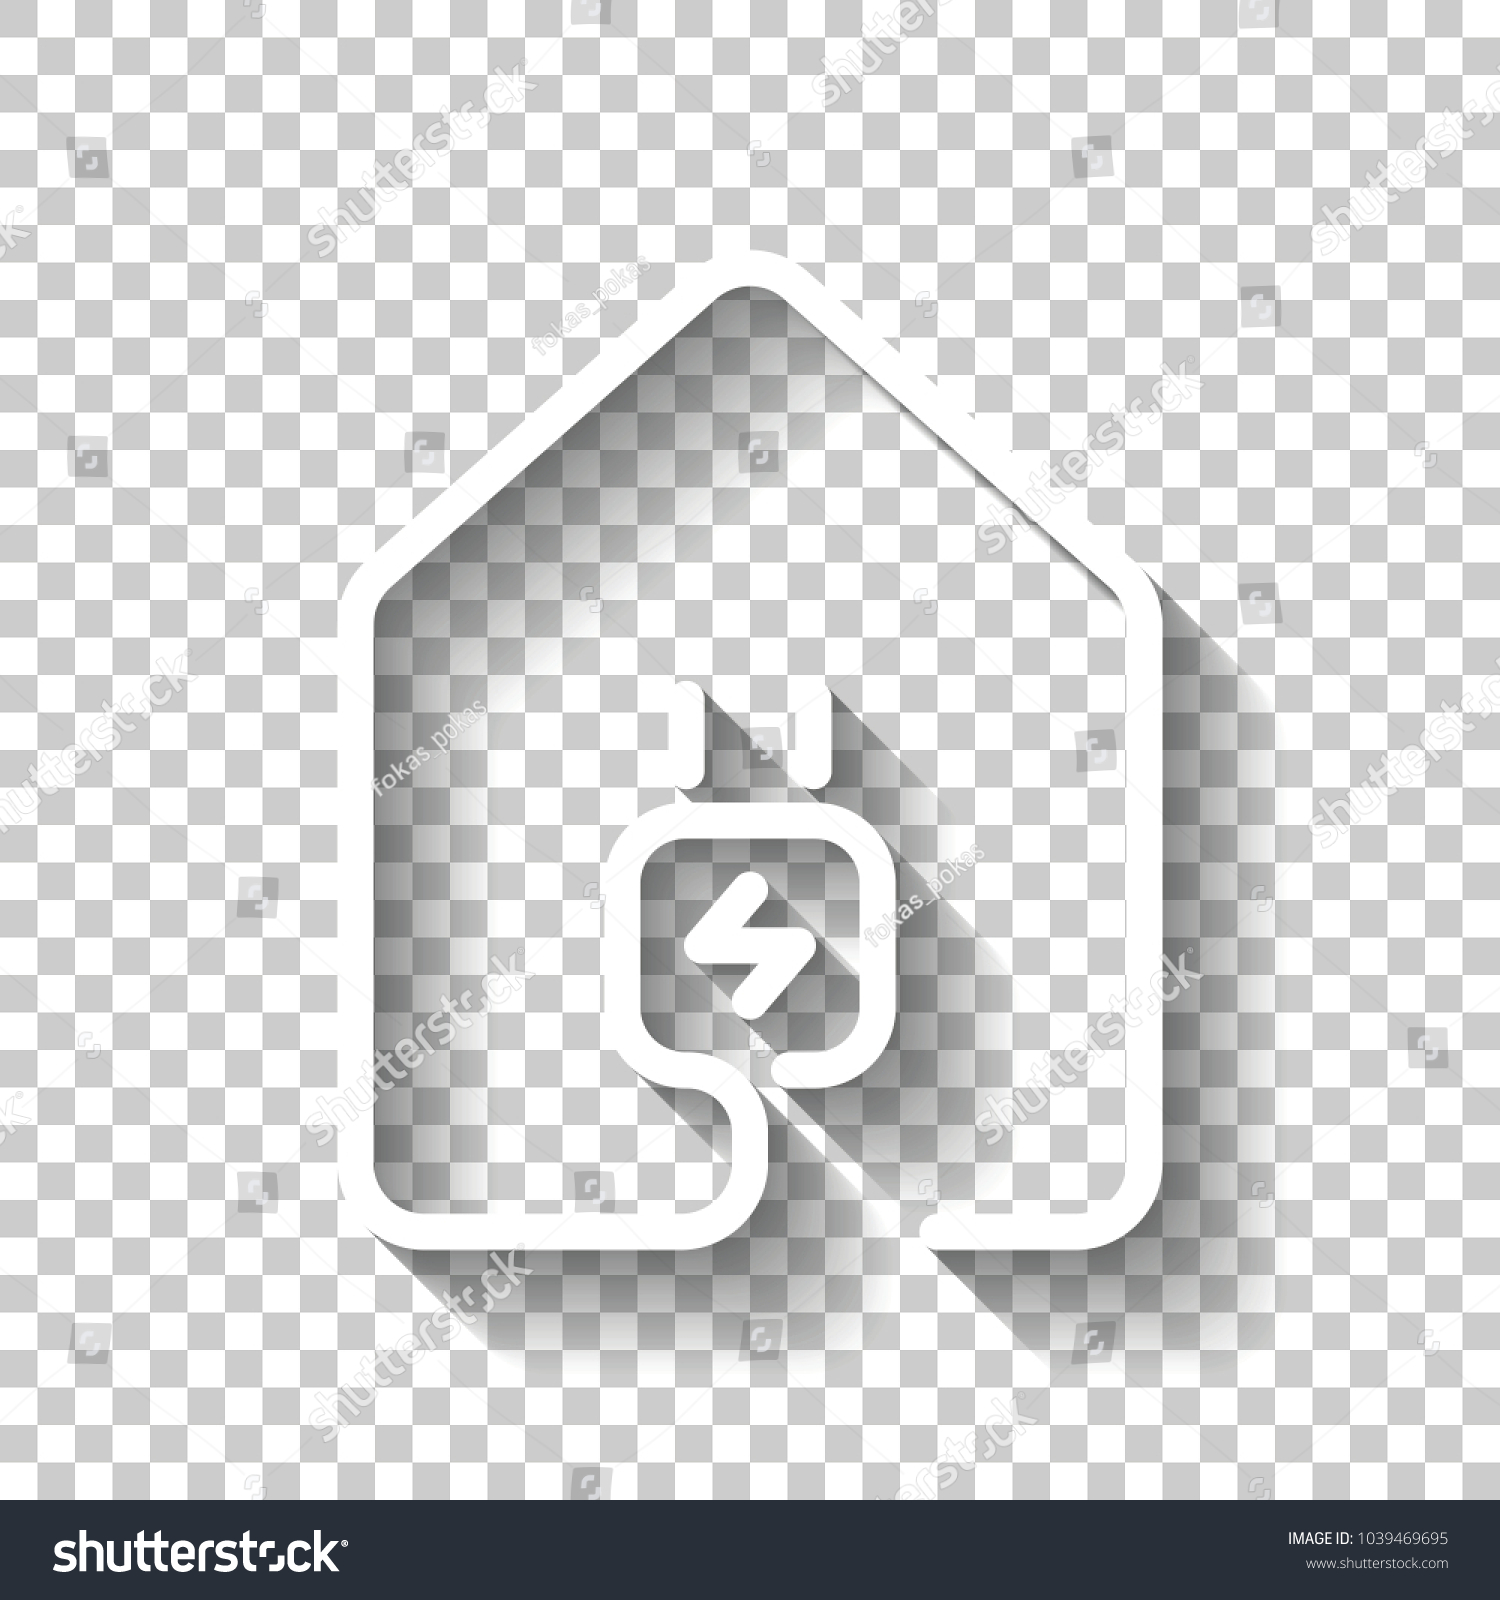 House Electric Power Plug Icon Line Stock Vector 1039469695 ...